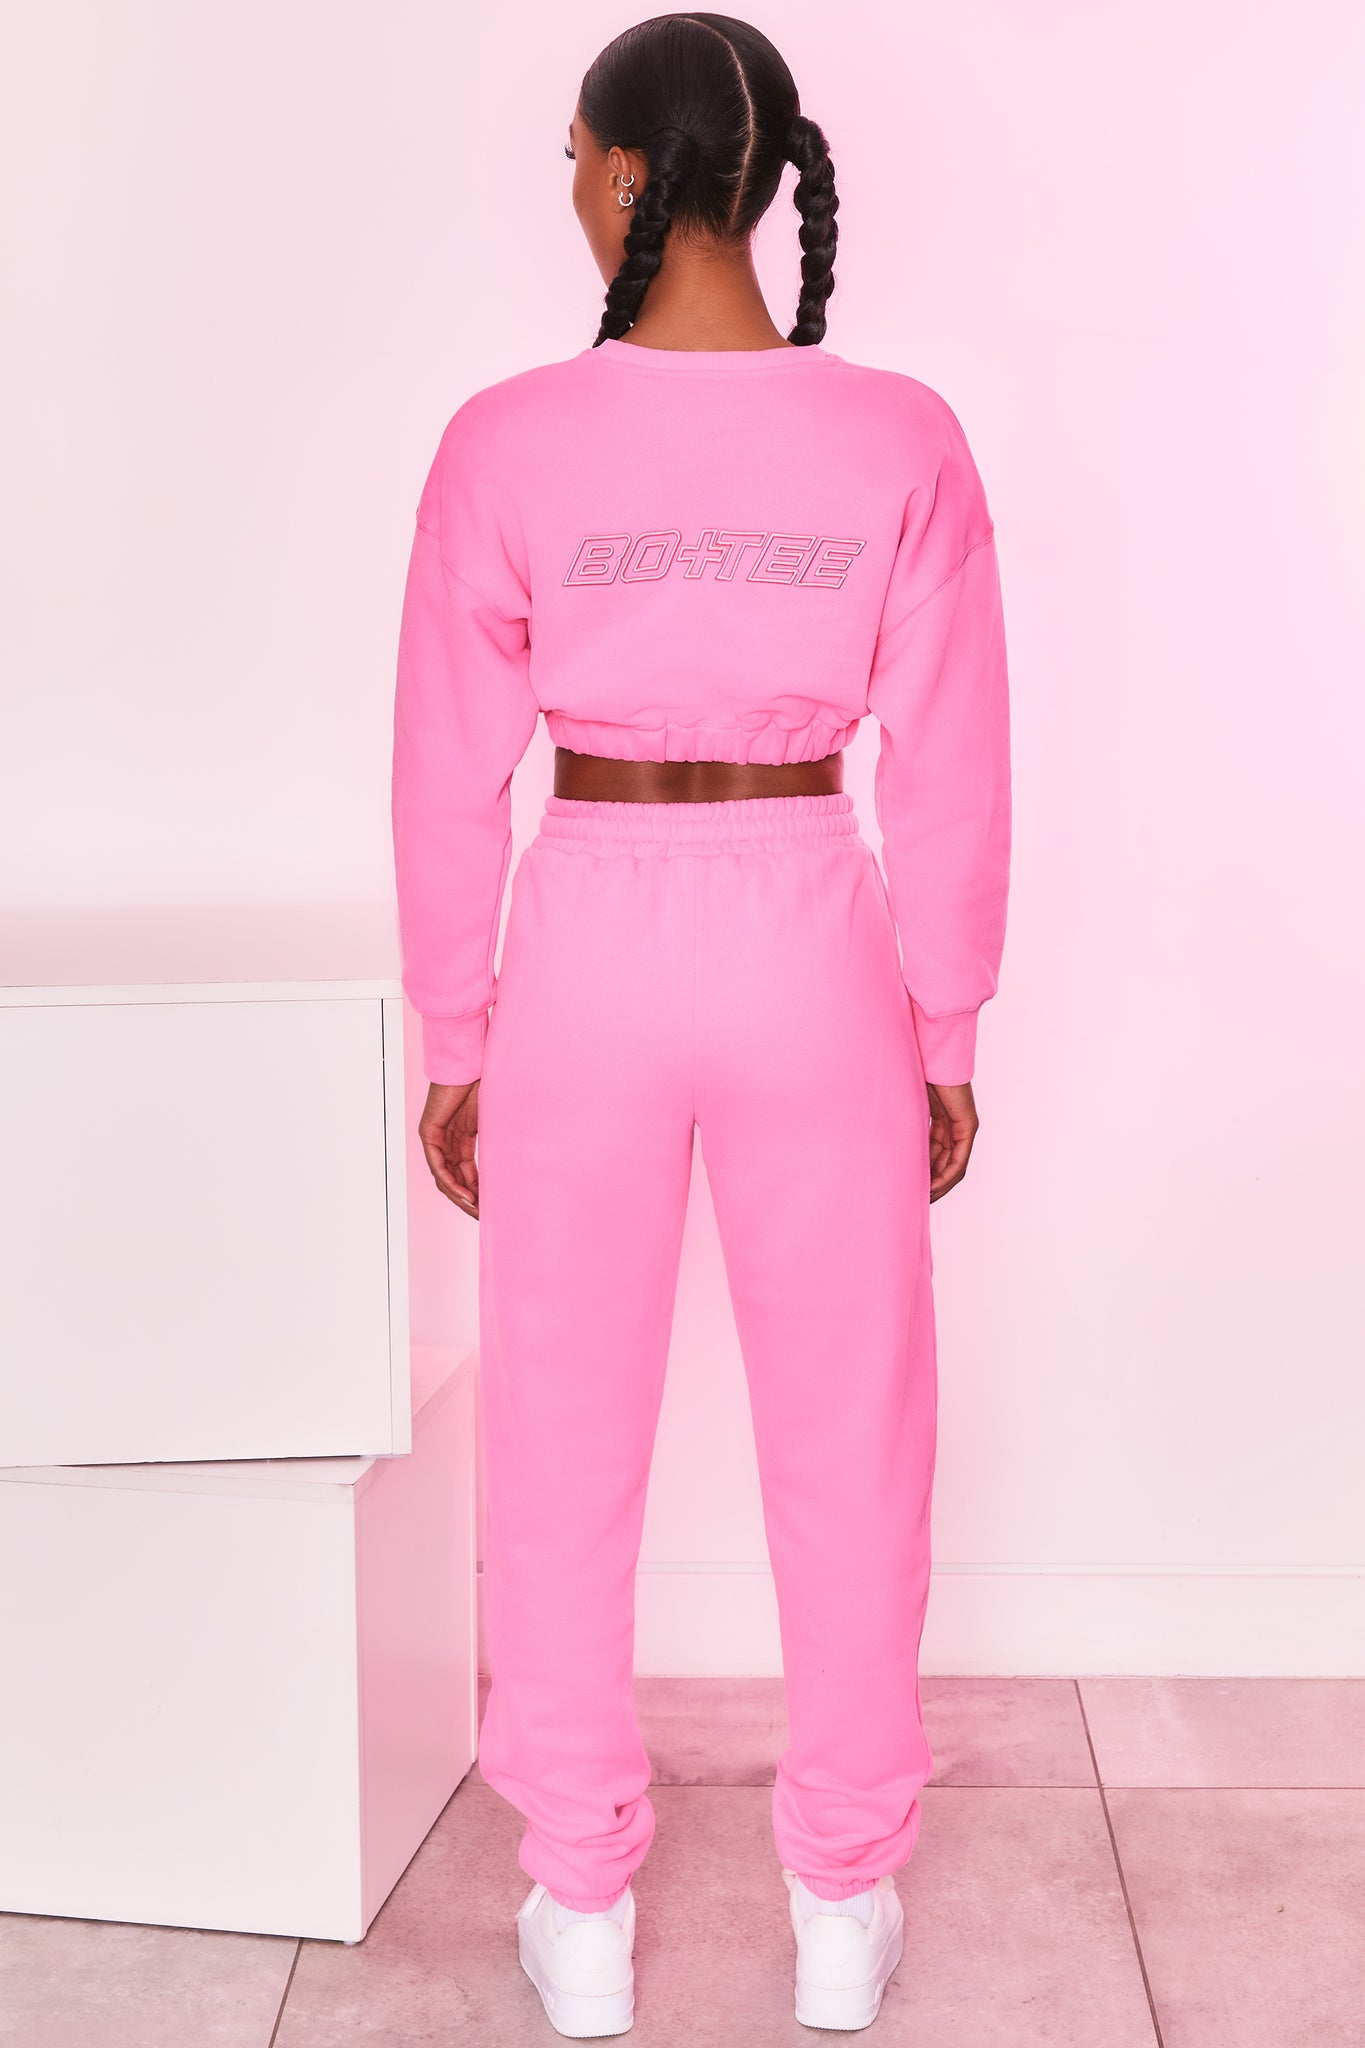 Long sleeve cropped jumper in candy pink with logo branding. Image 3 of 6.